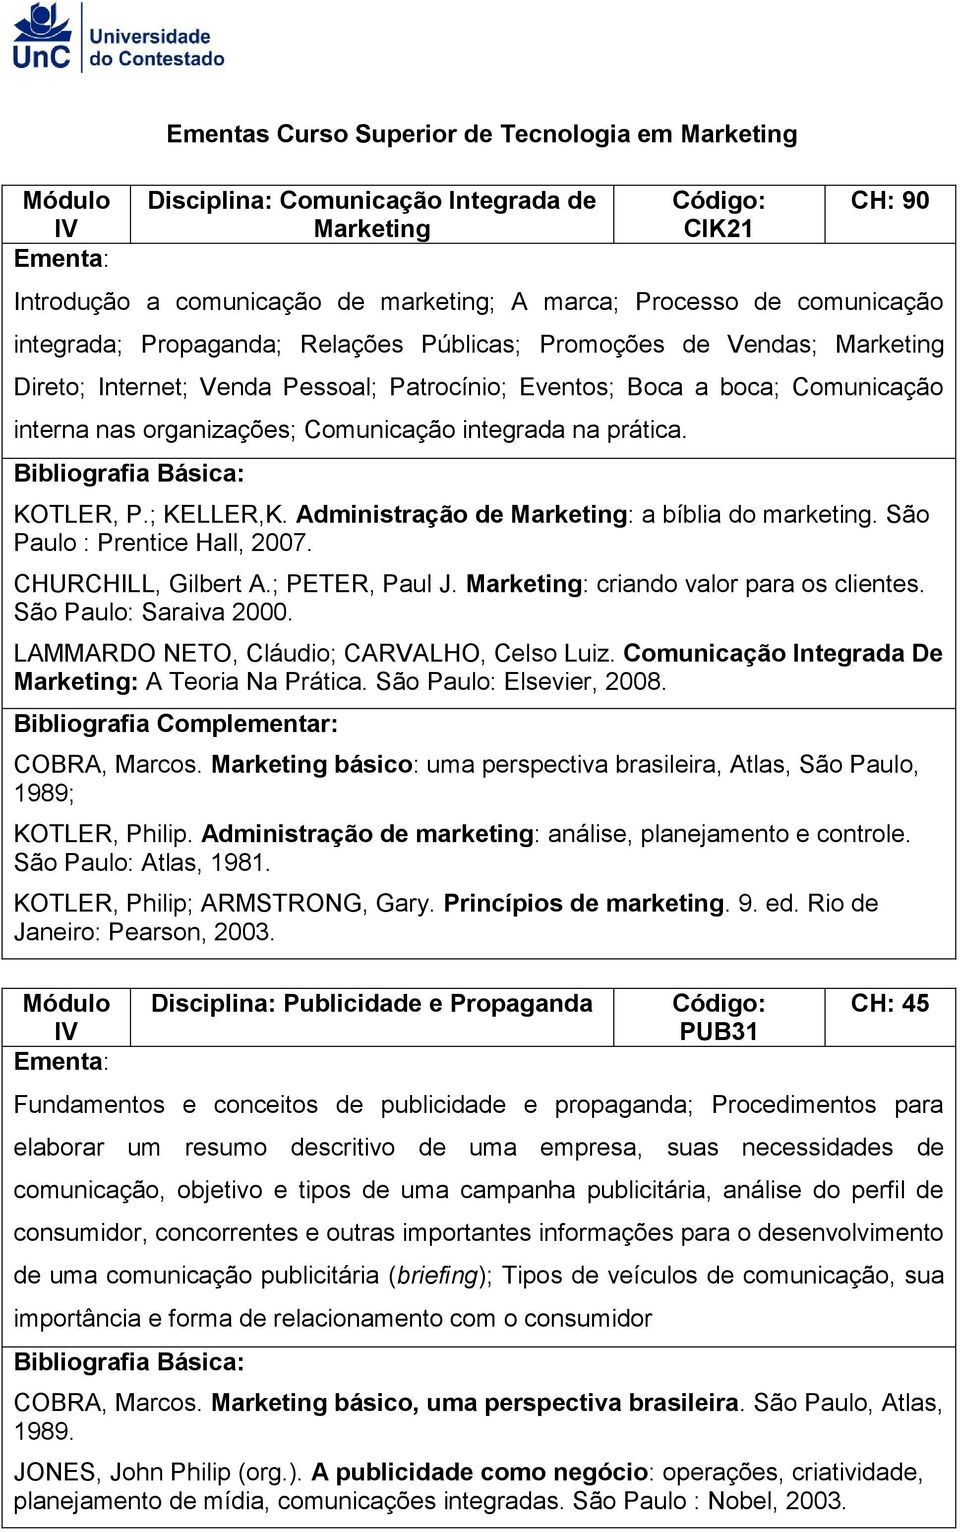 KOTLER, P.; KELLER,K. Administração de Marketing: a bíblia do marketing. São Paulo : Prentice Hall, 2007. CHURCHILL, Gilbert A.; PETER, Paul J. Marketing: criando valor para os clientes.